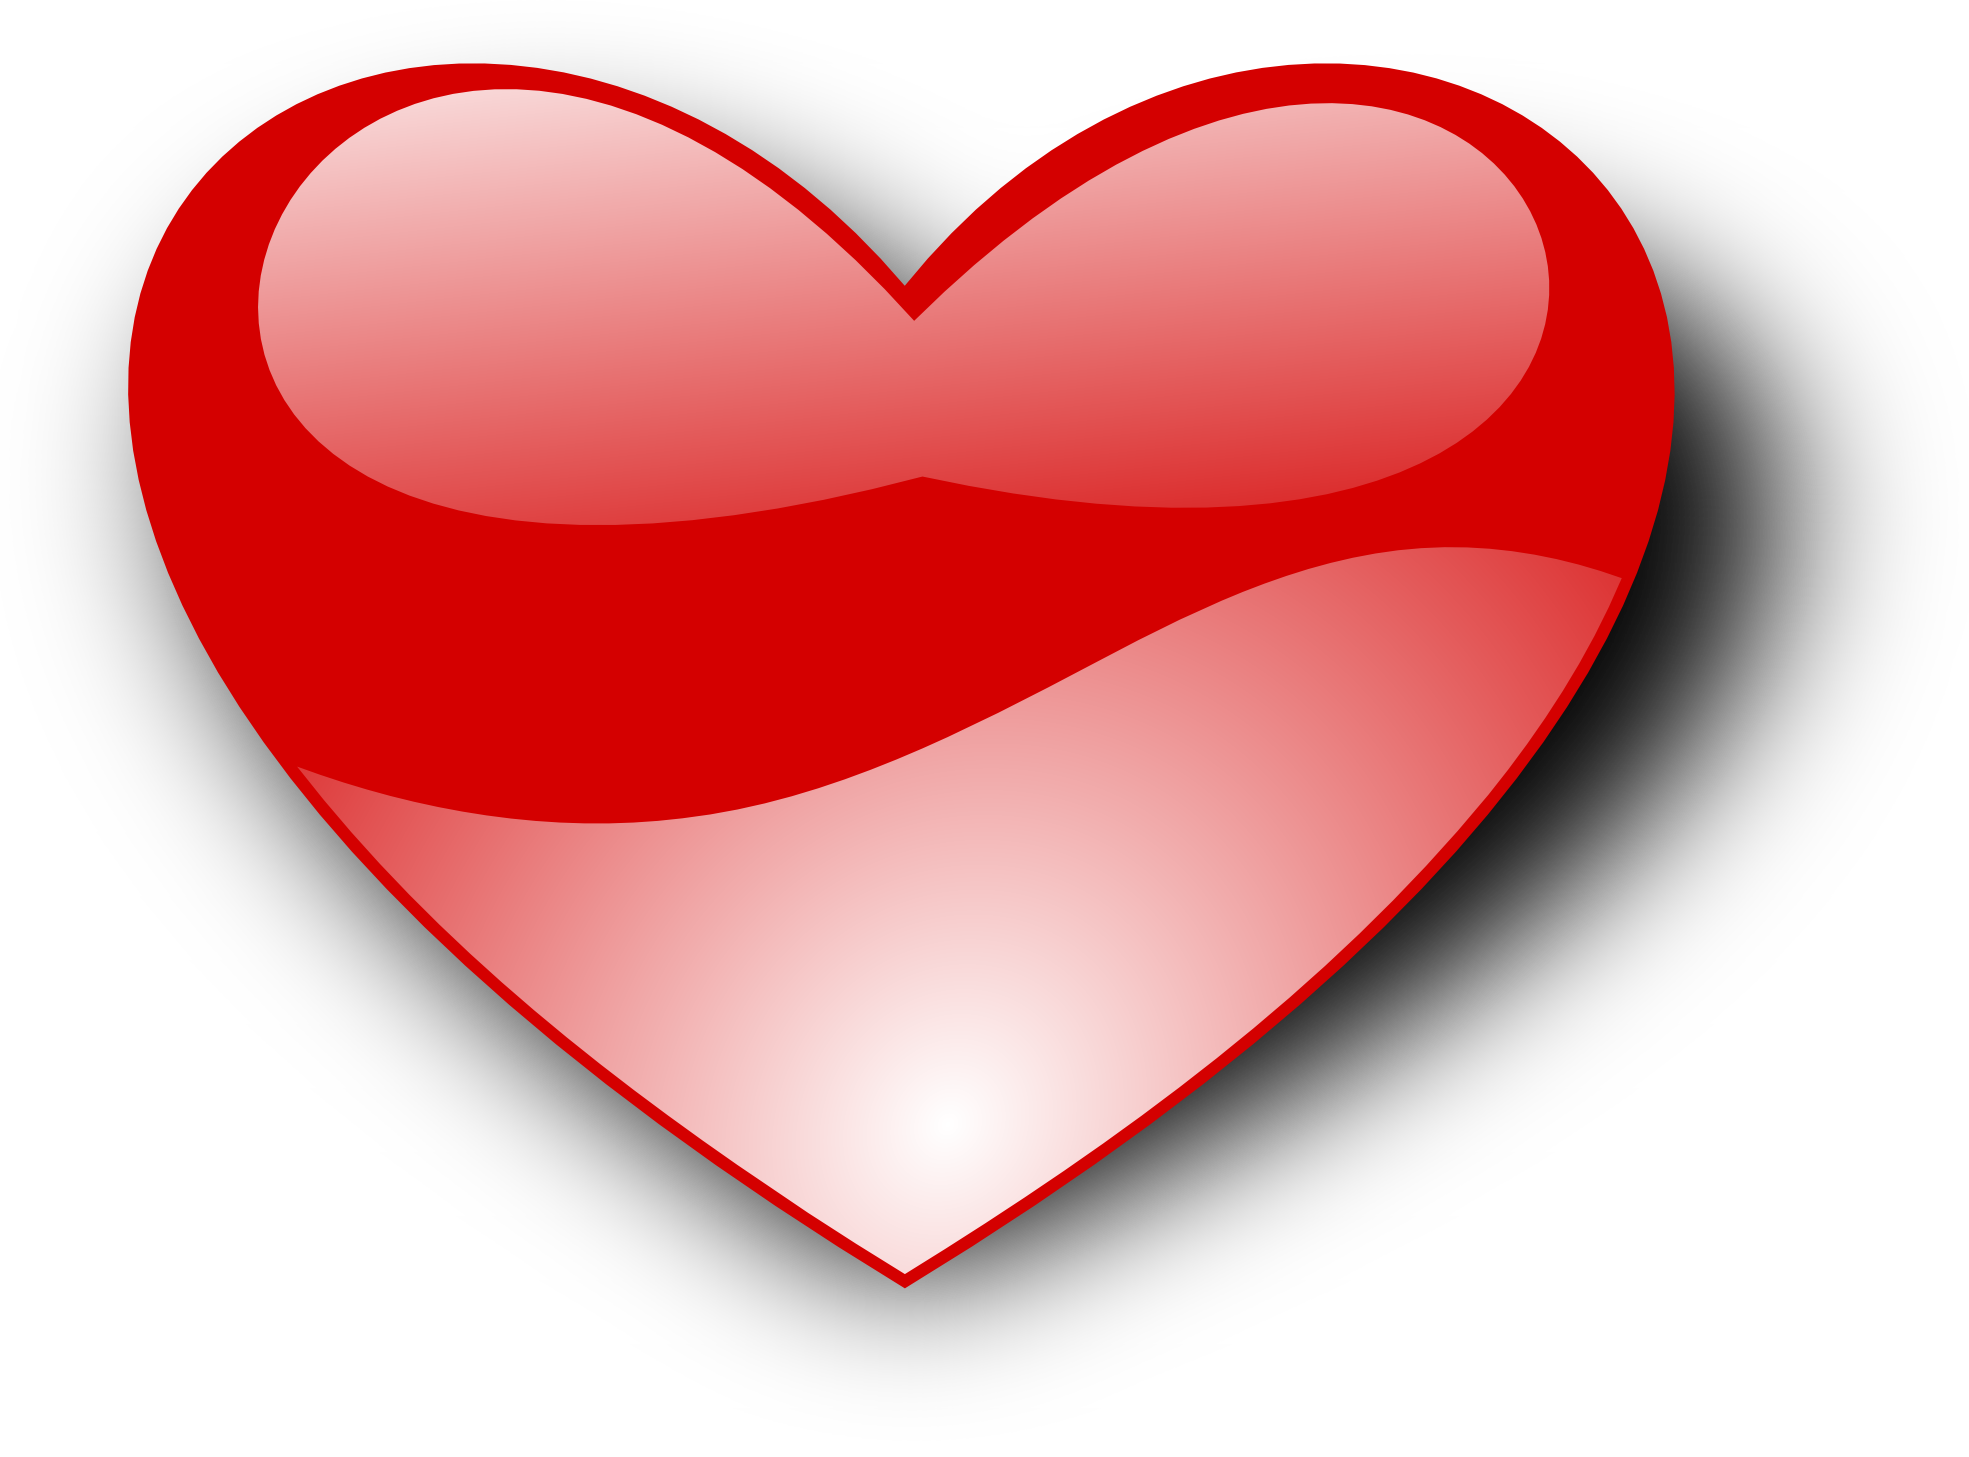 Love png image. Transparent images all pic